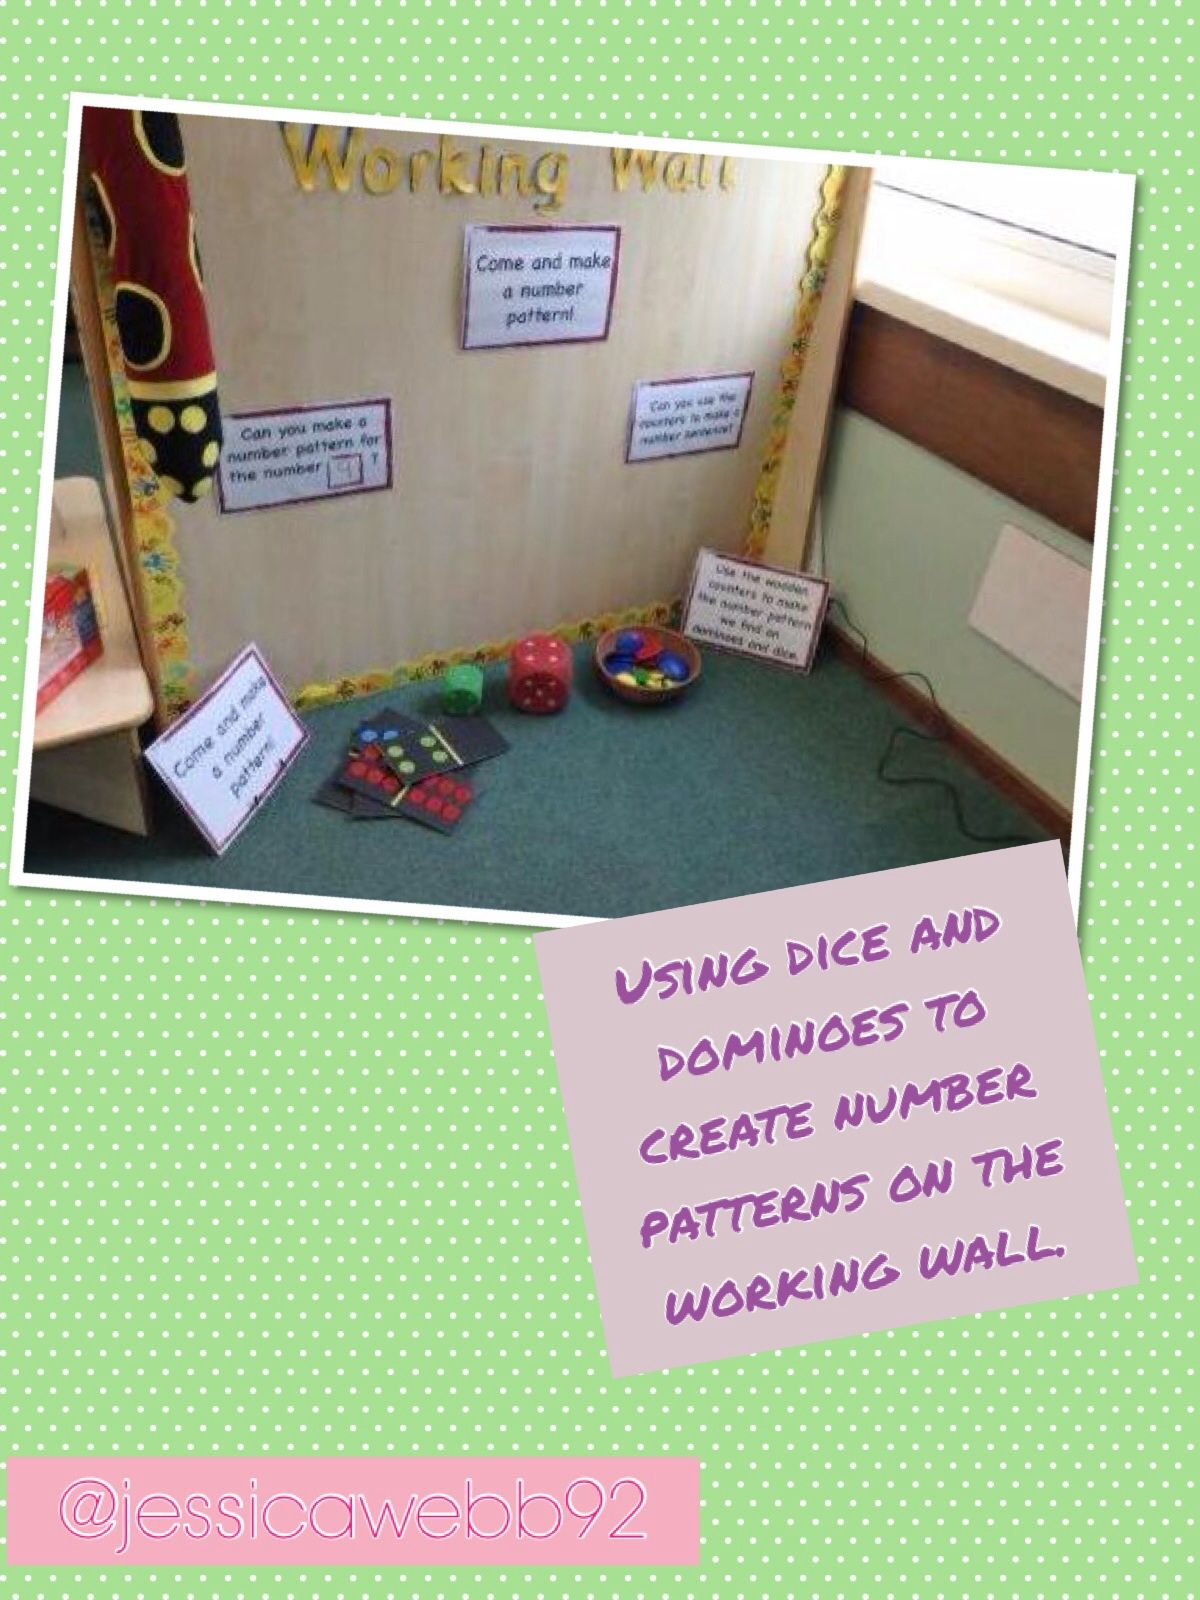 Making Number Patterns On The Working Wall Use Wooden